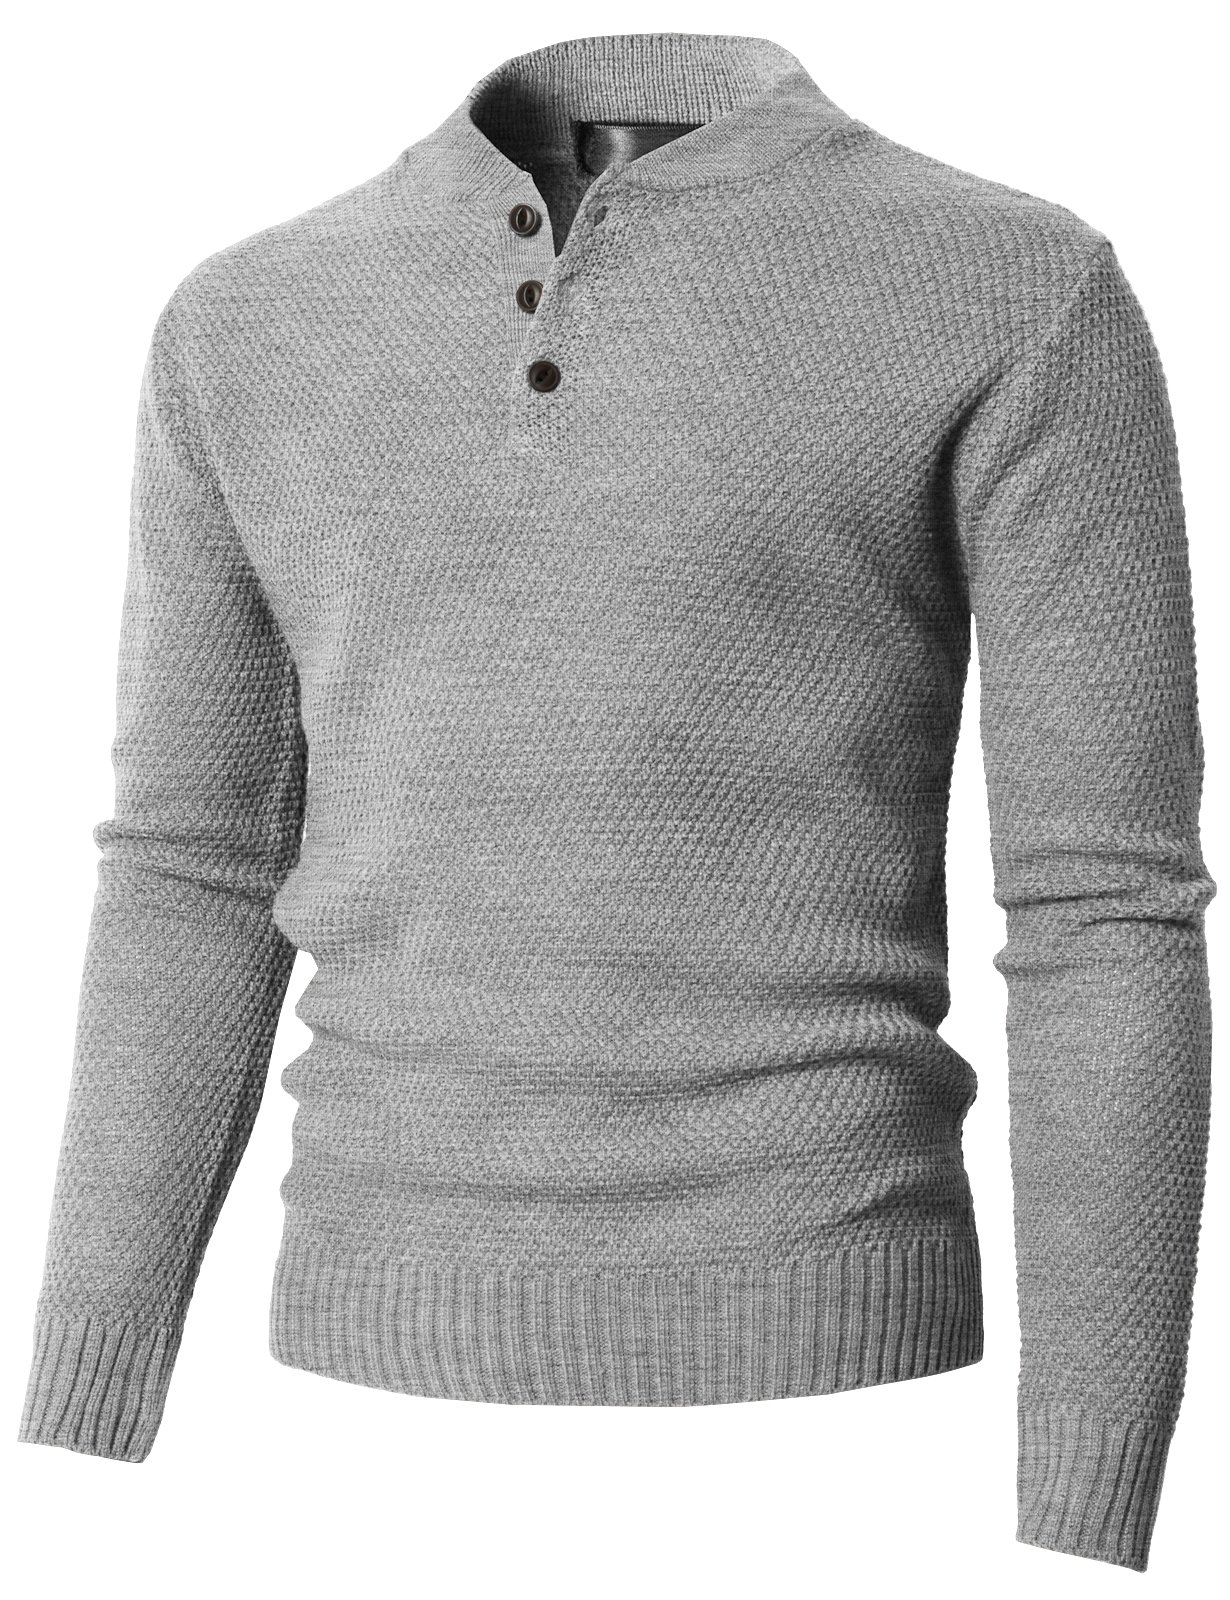 H2H Men Crew Neck Color Block Long Sleeves Pullover Knitted Sweater Gray US L/Asia XL (KMOSWL0202)